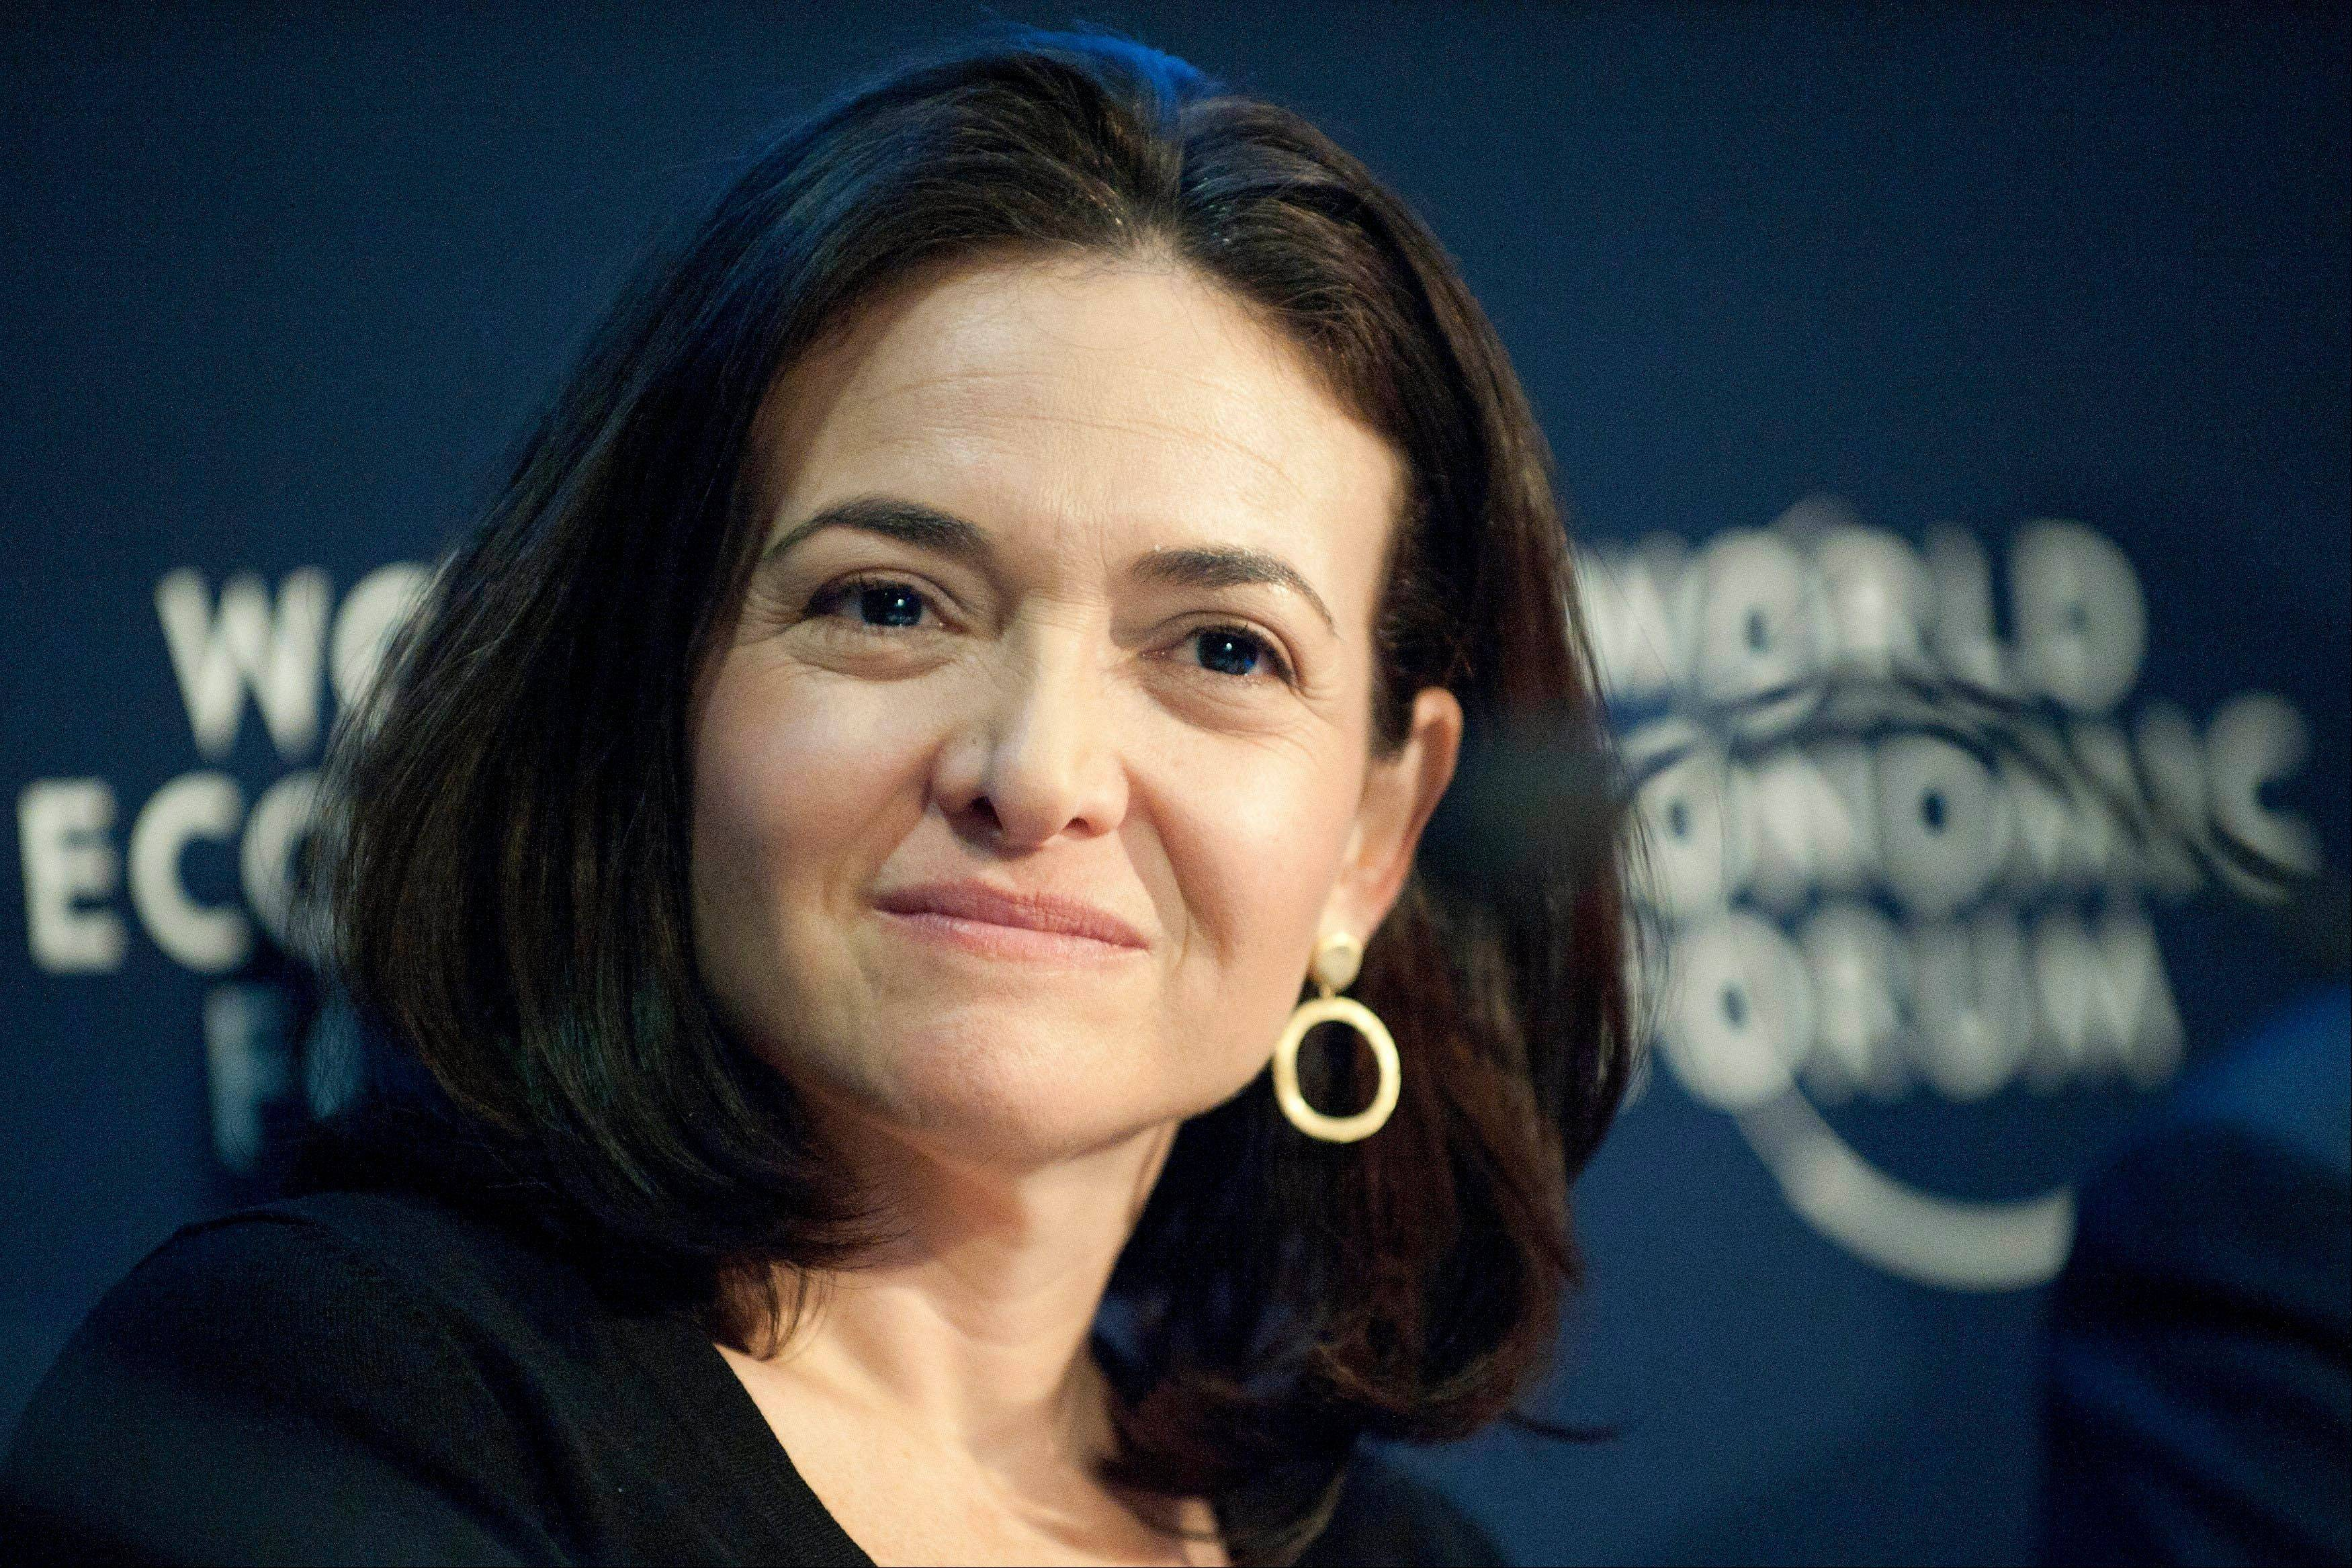 Sheryl Sandberg is chief operating officer of the social network service Facebook. She joined Facebook from Google in 2008, as the first woman on Facebook's board of directors.